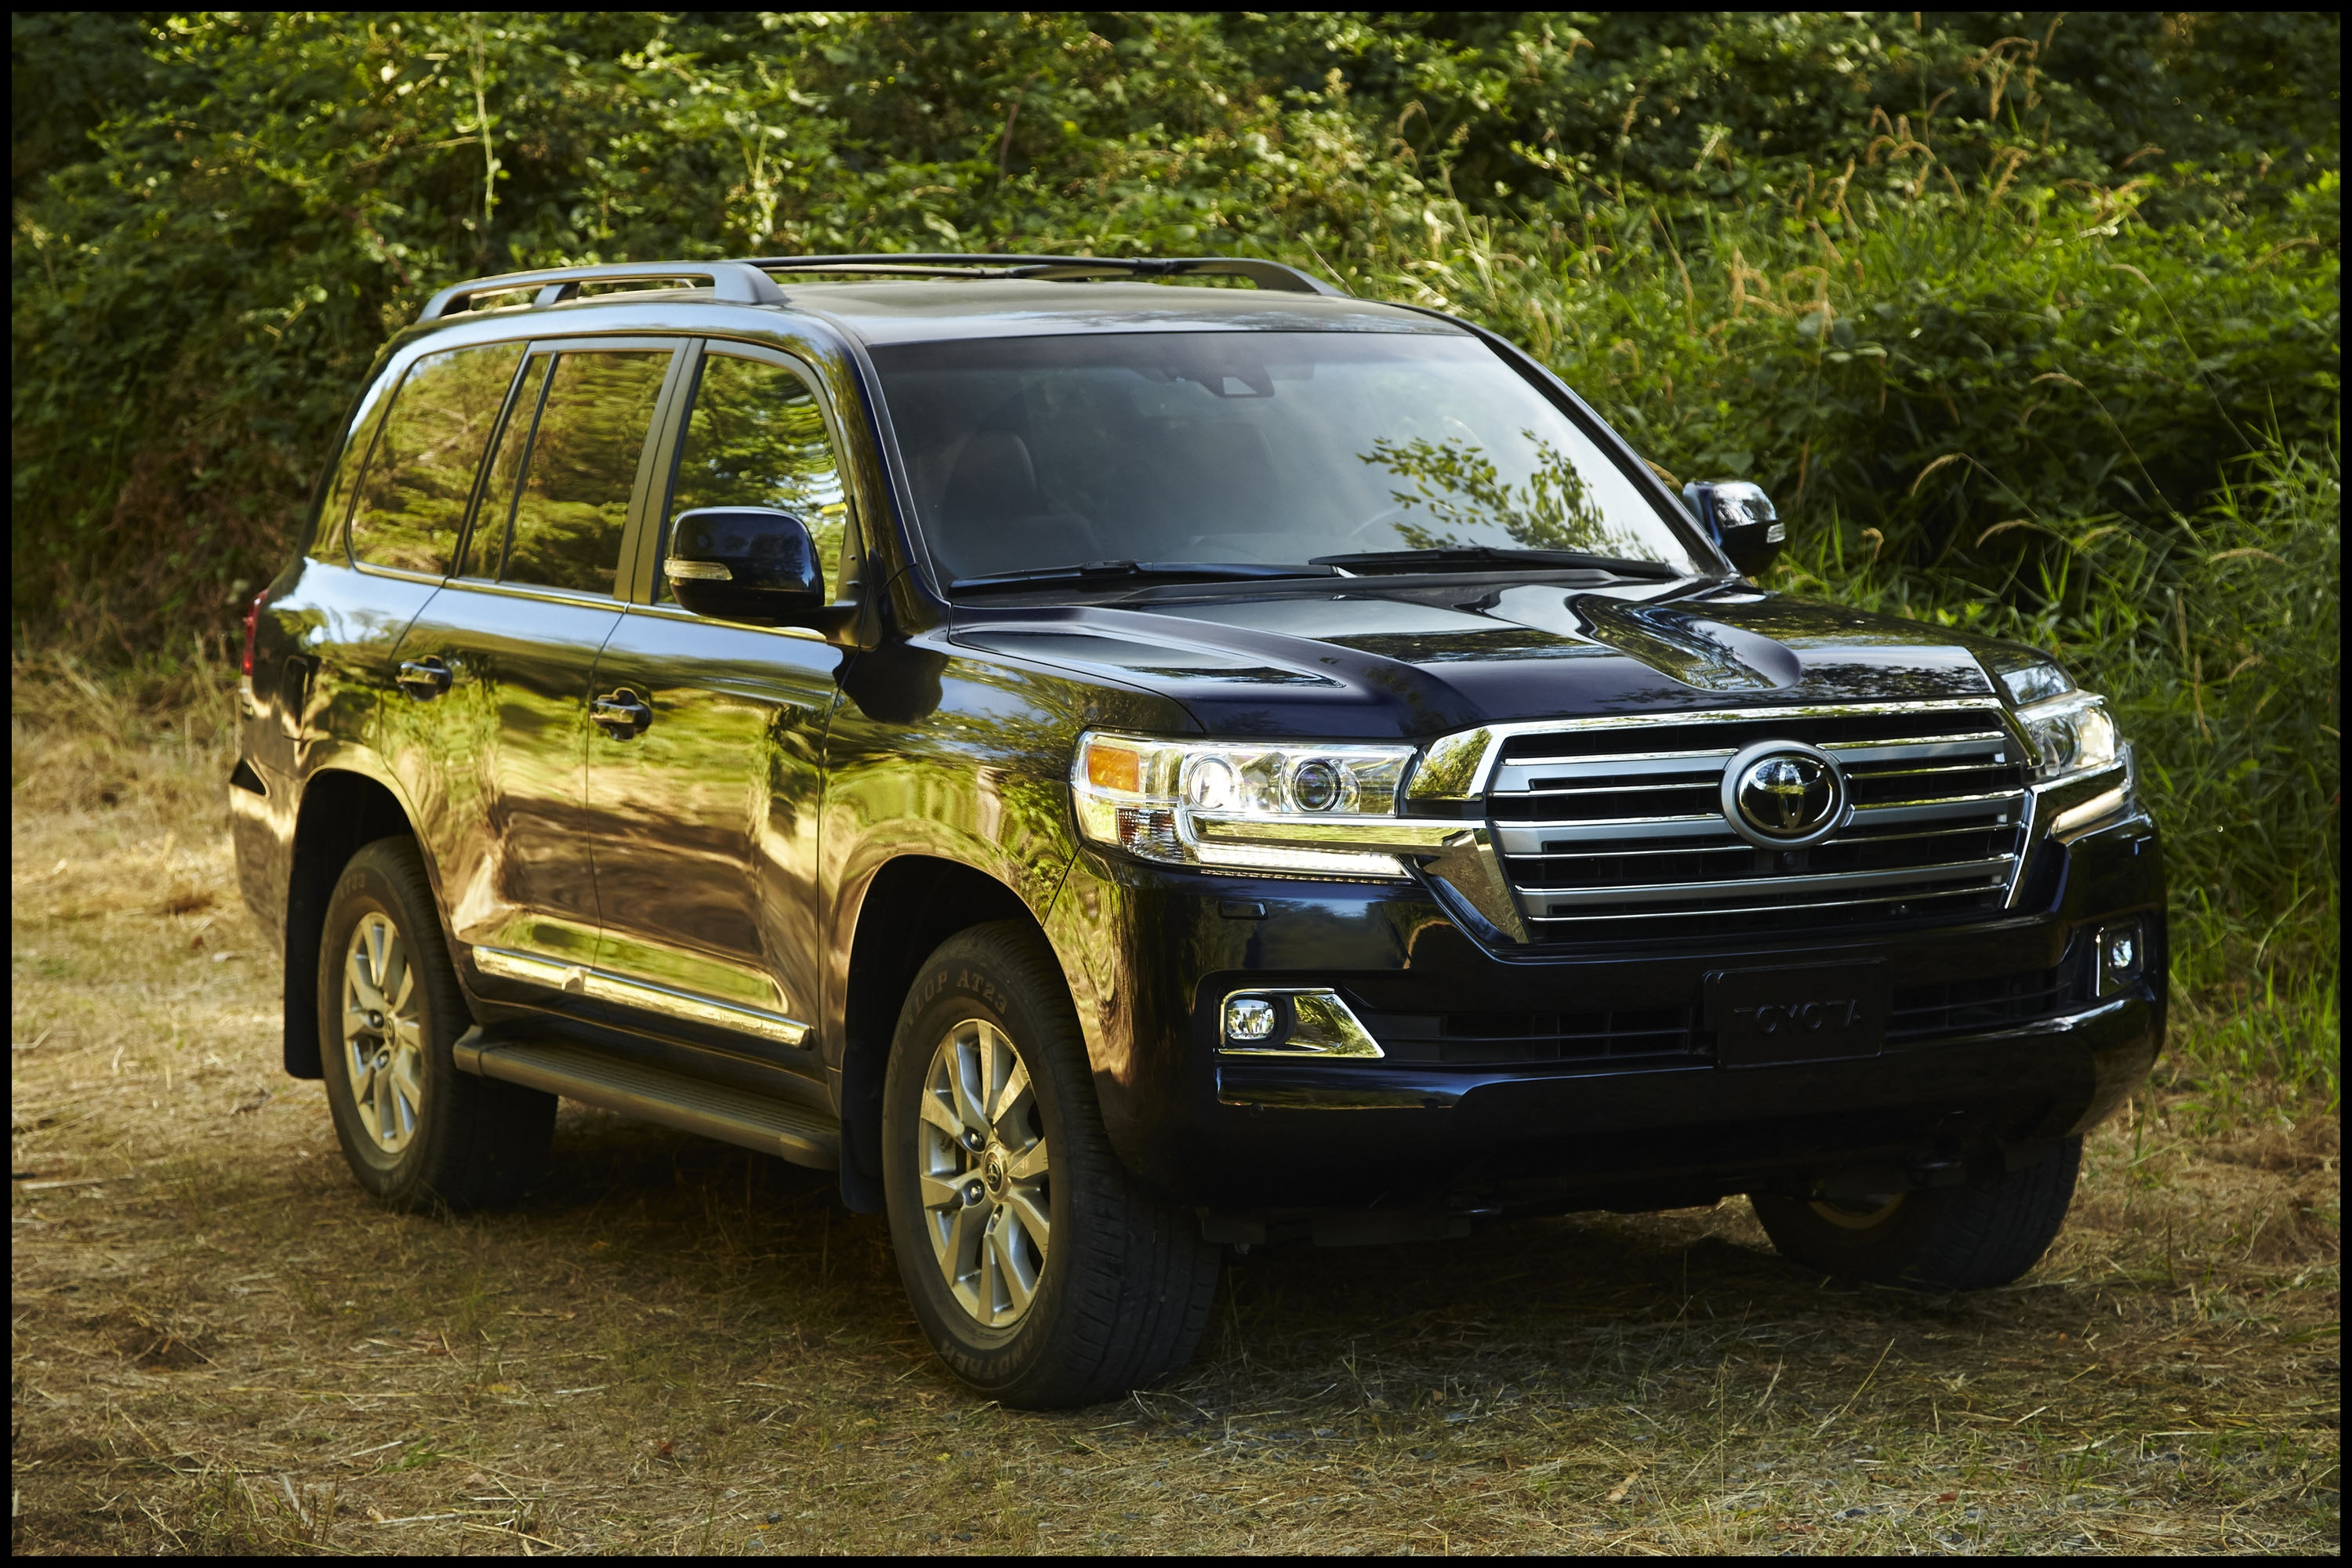 New 1996 toyota Land Cruiser Review Ratings Specs Prices and S Exterior and Interior Review